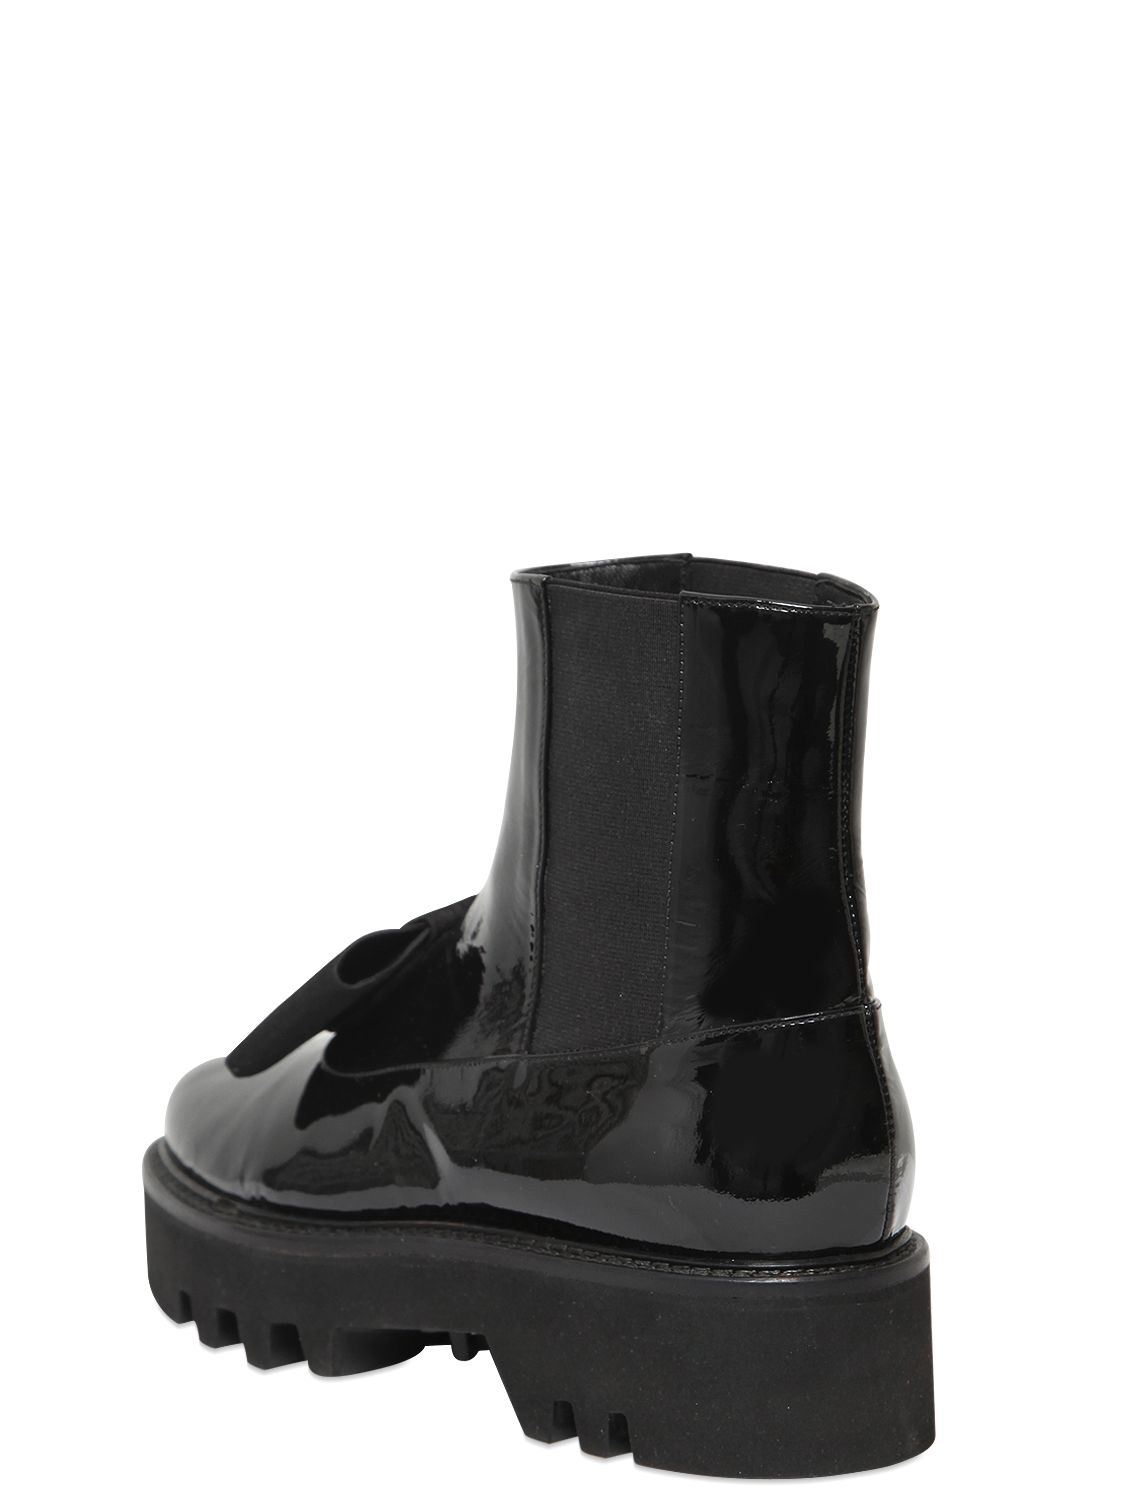 WALTER STEIGER Patent Leather Boots aBG6h